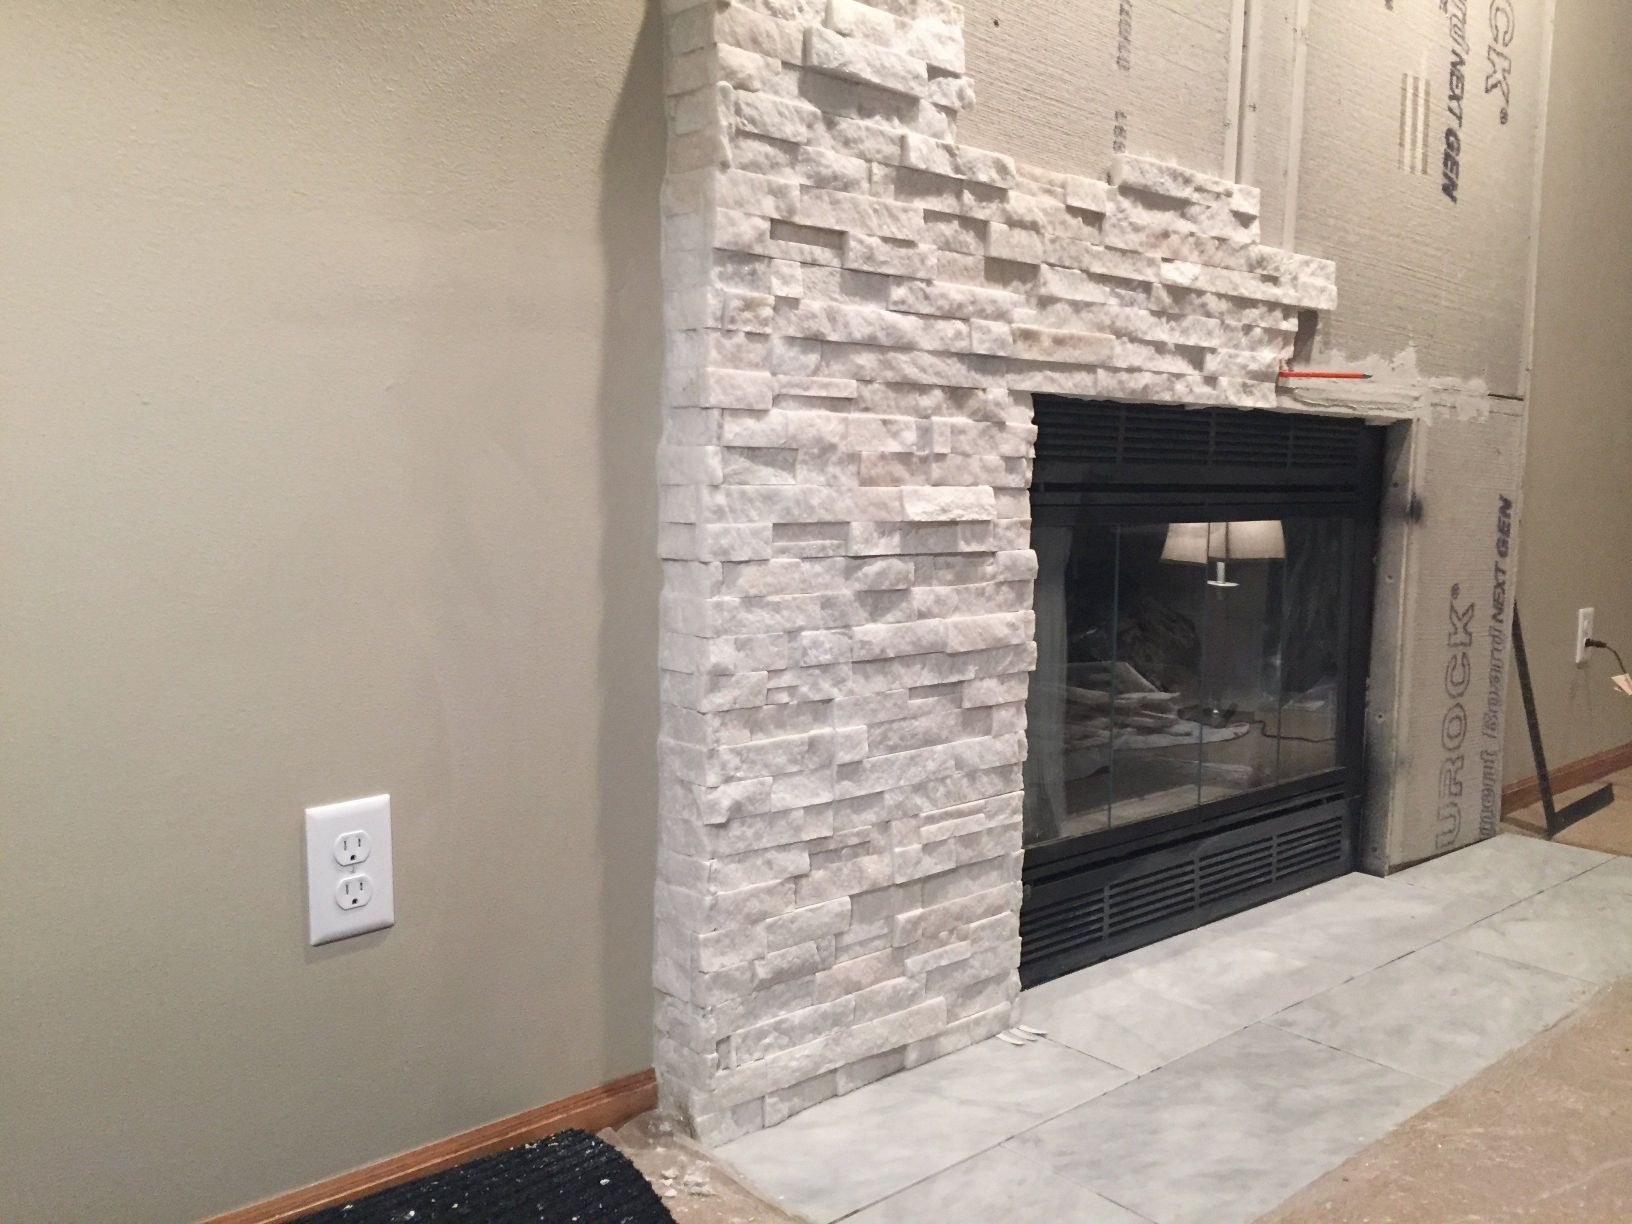 How To Install Stacked Stone Tile on Drywall How To Install